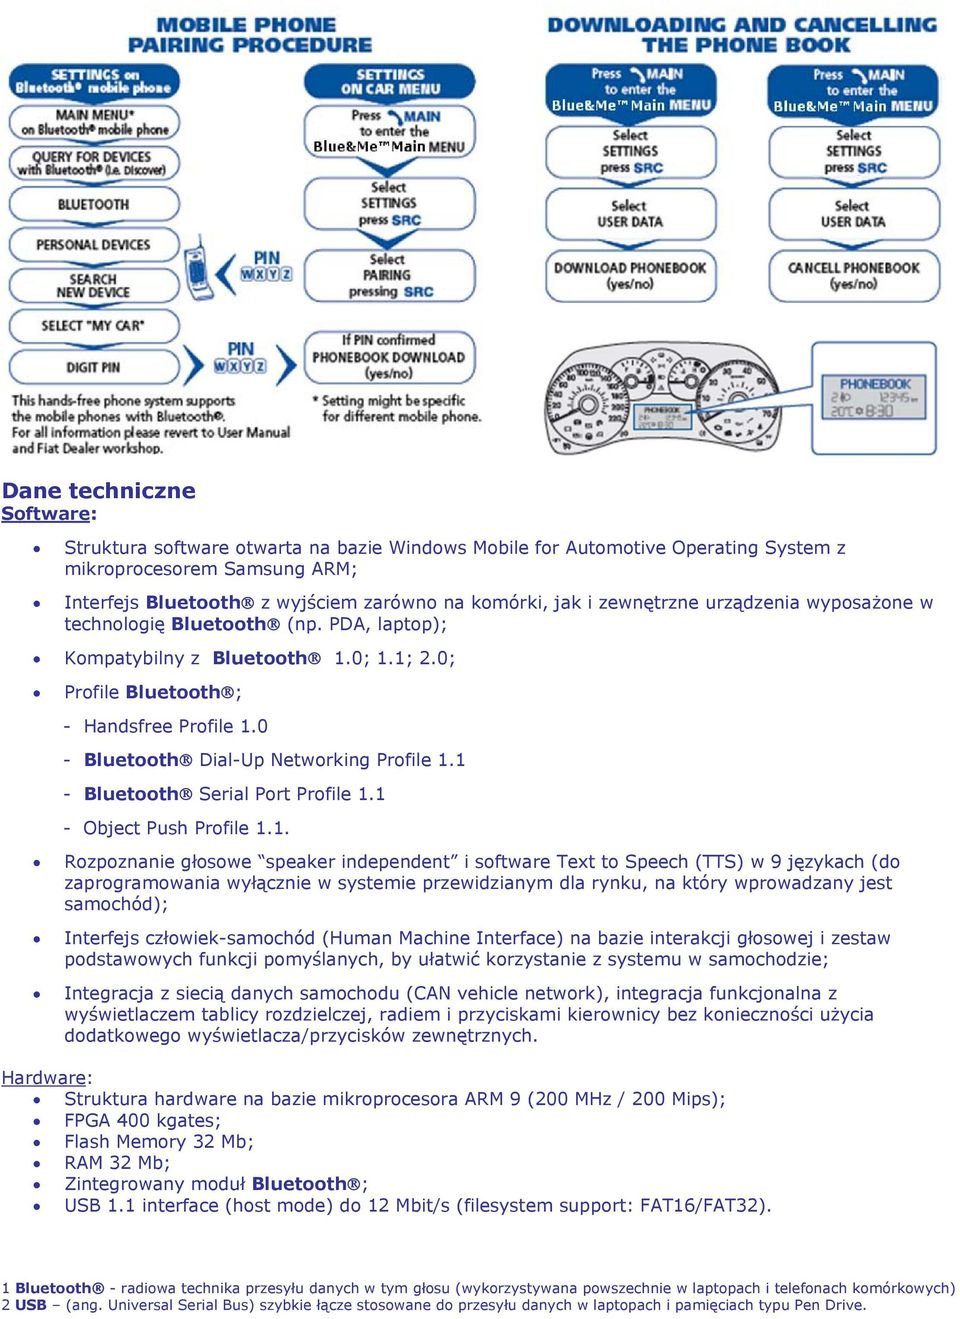 0 - Bluetooth Dial-Up Networking Profile 1.